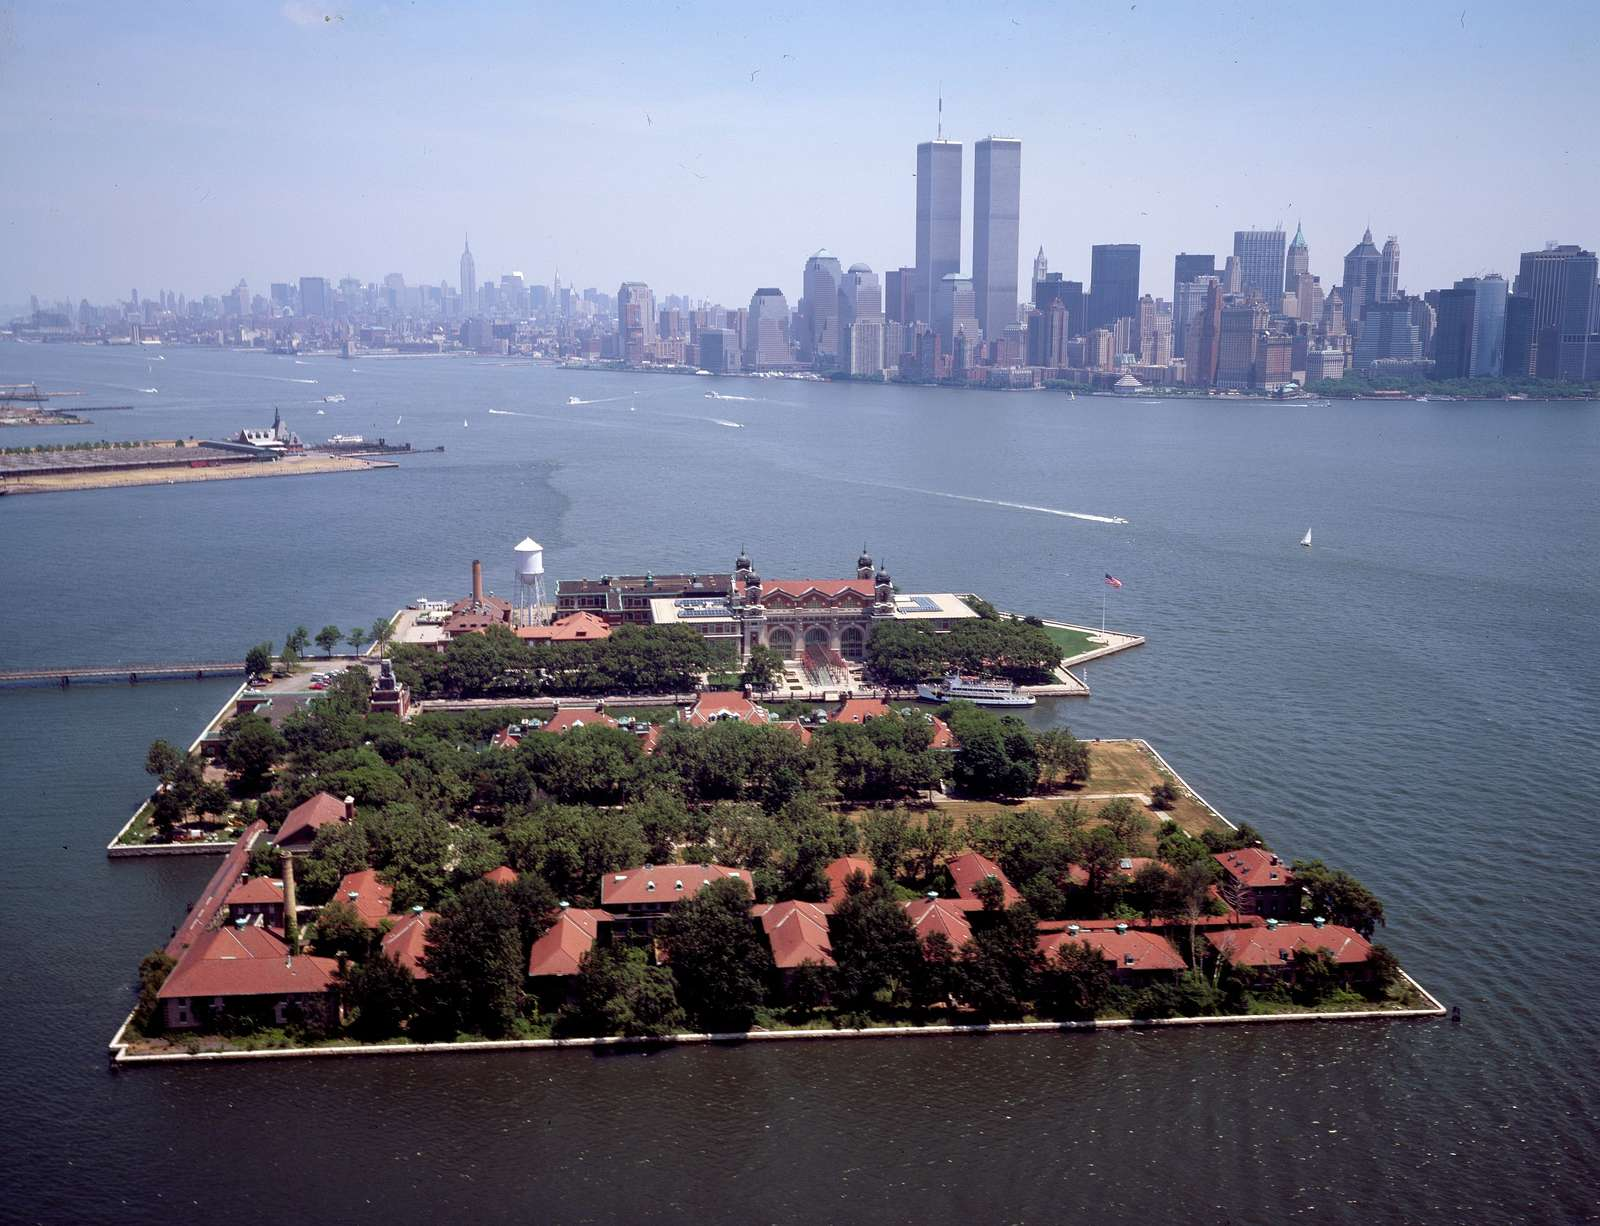 Aerial view of the Ellis Island immigration station, with the World Trade Center Twin Towers, New York City, in the distance